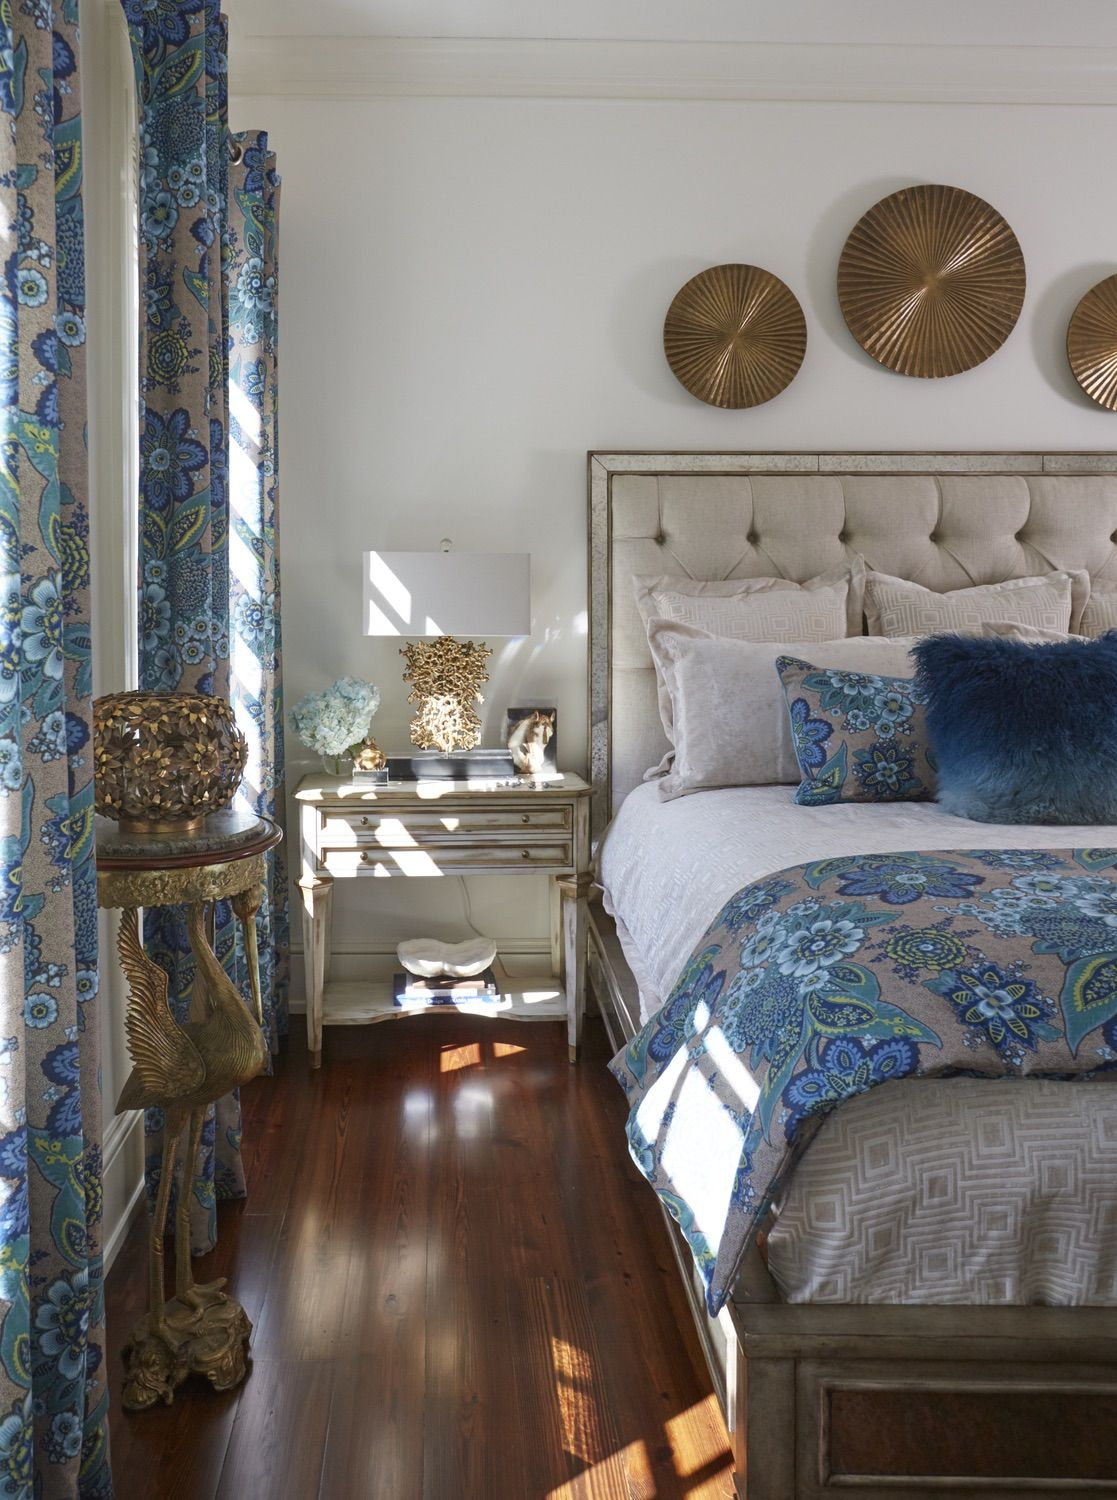 Old World Chic | Traditional, Bedrooms and Interiors